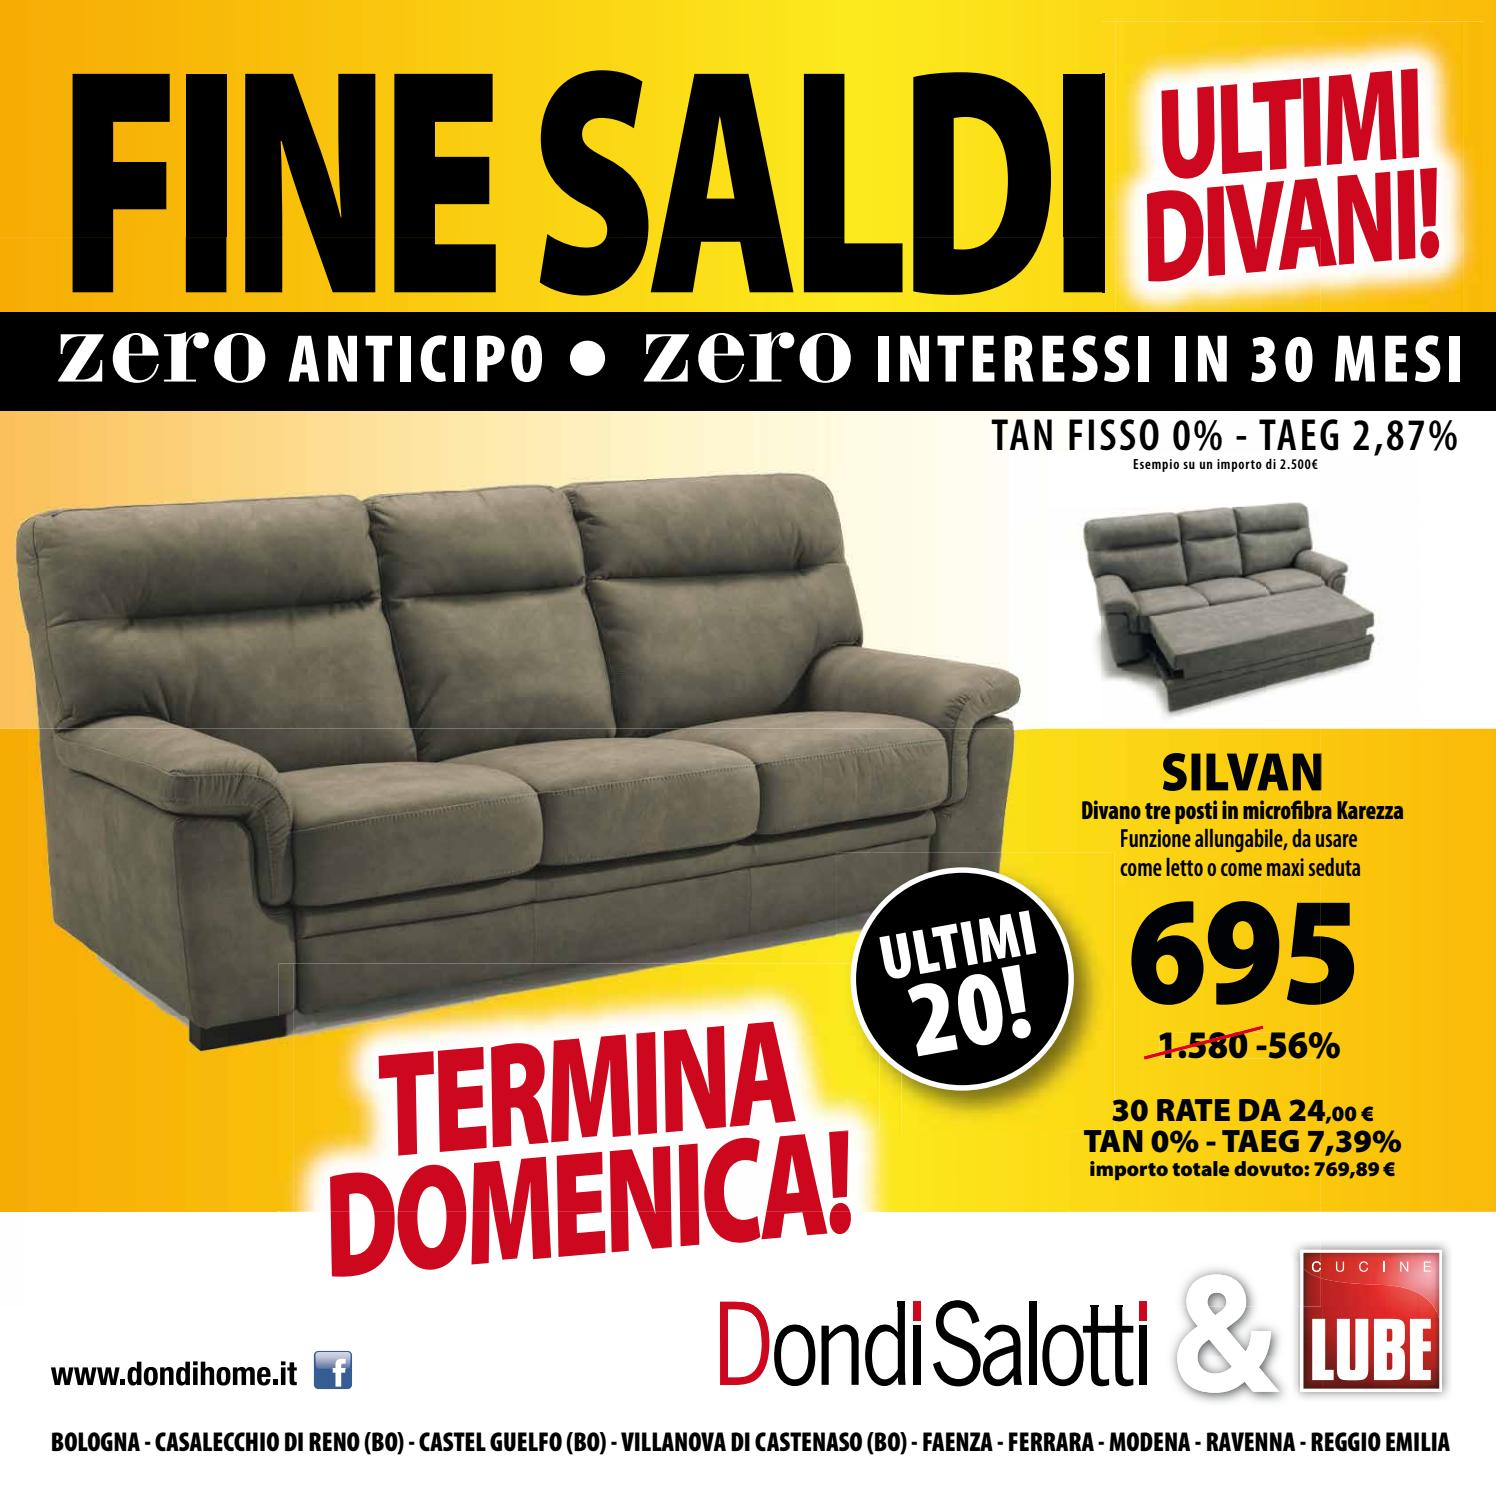 Dondi Salotti fine saldi by Michele Travagli  Issuu